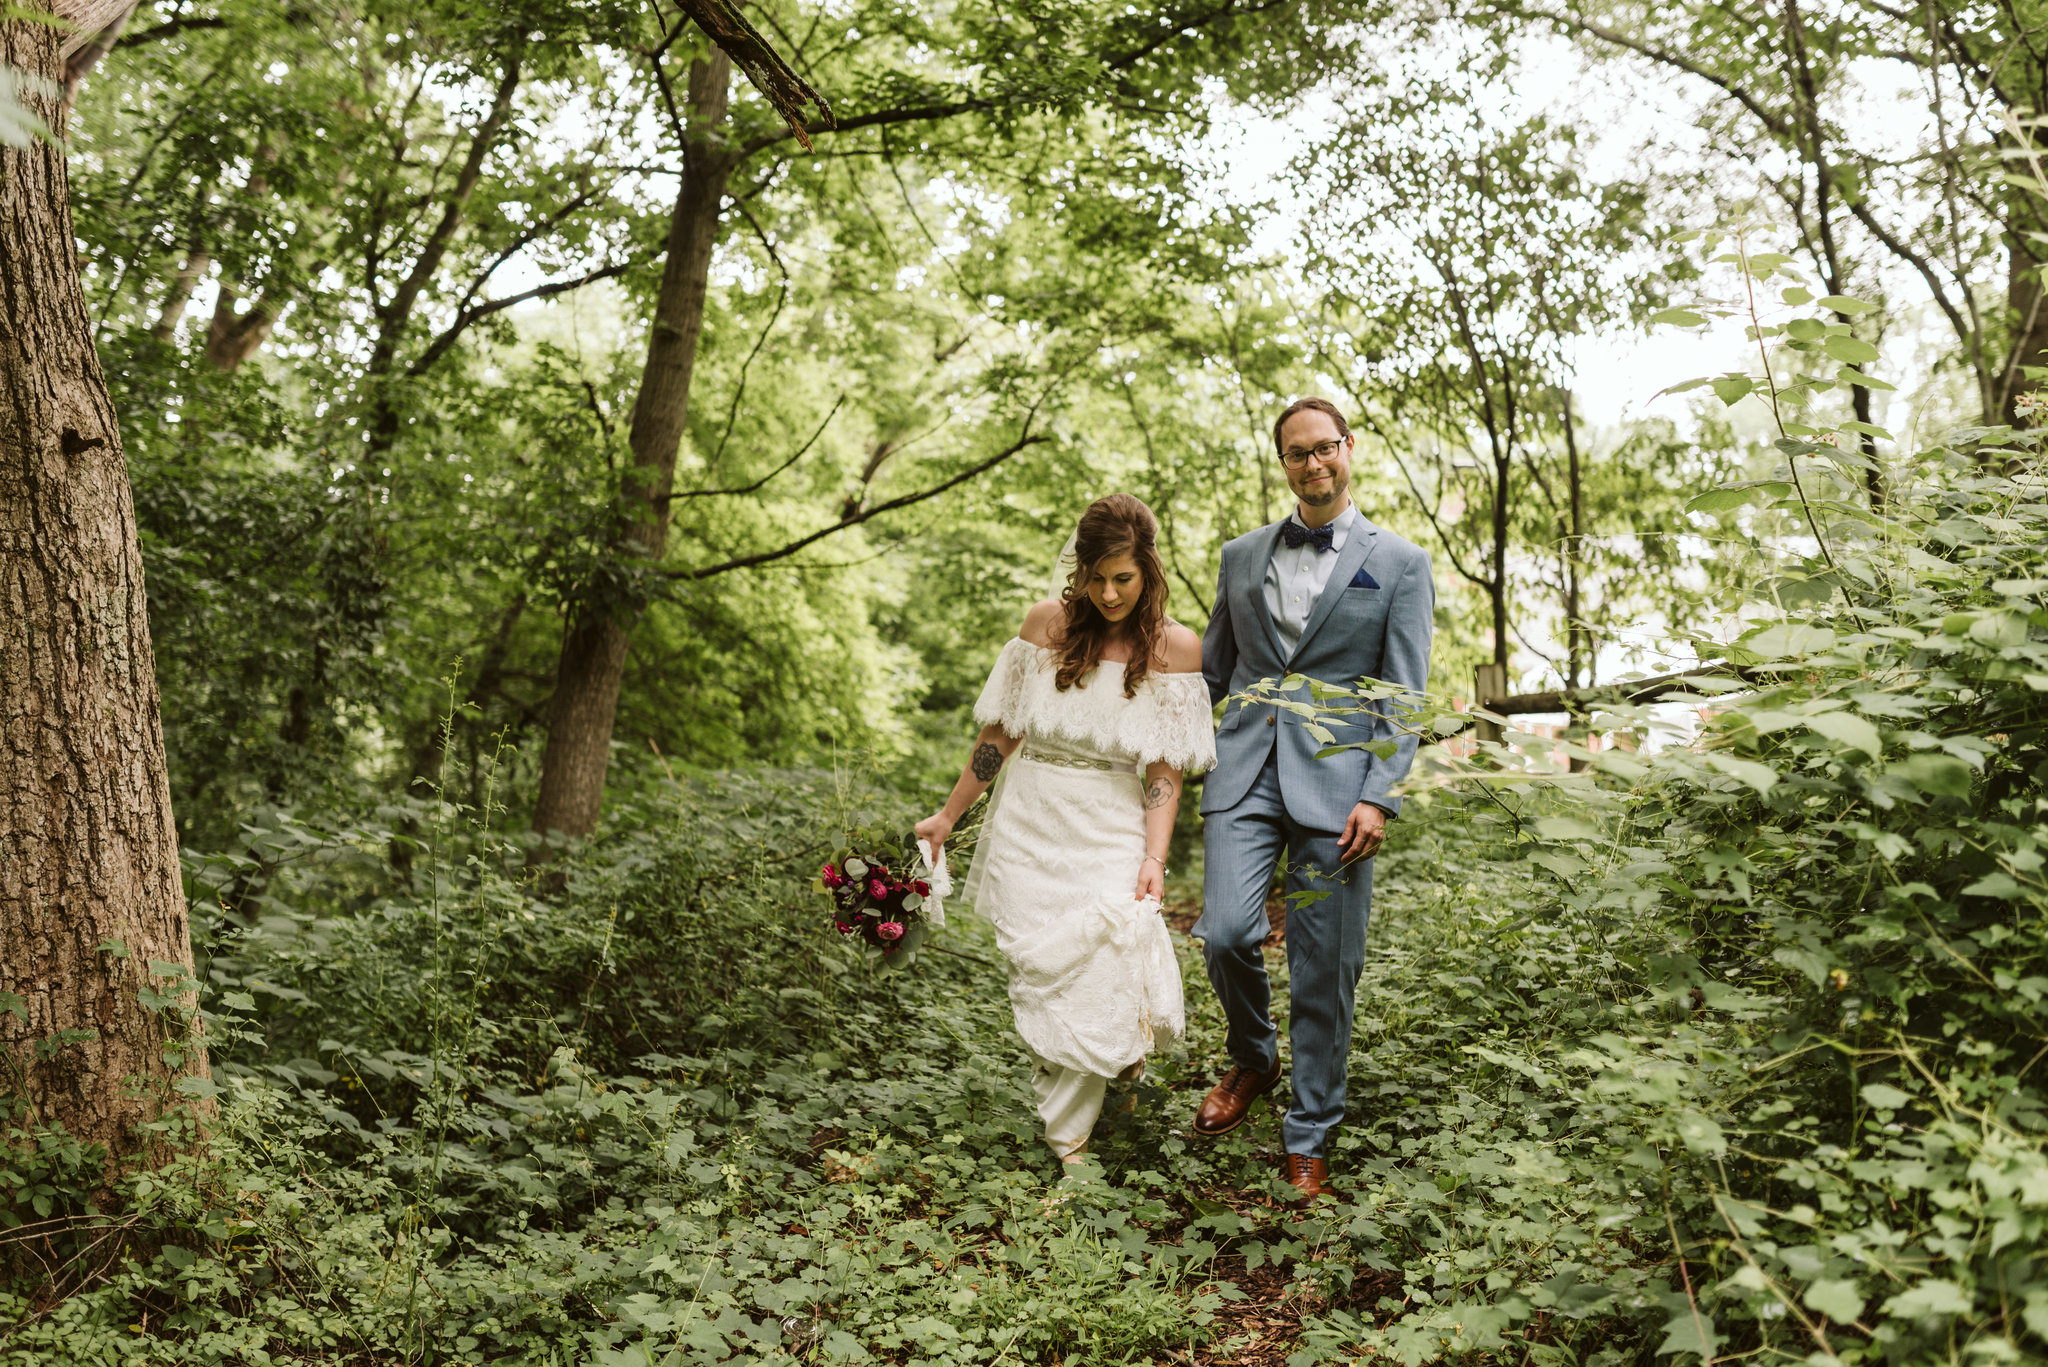 Annapolis, Quaker Wedding, Maryland Wedding Photographer, Intimate, Small Wedding, Vintage, DIY, Bride and Groom Walking through Woods